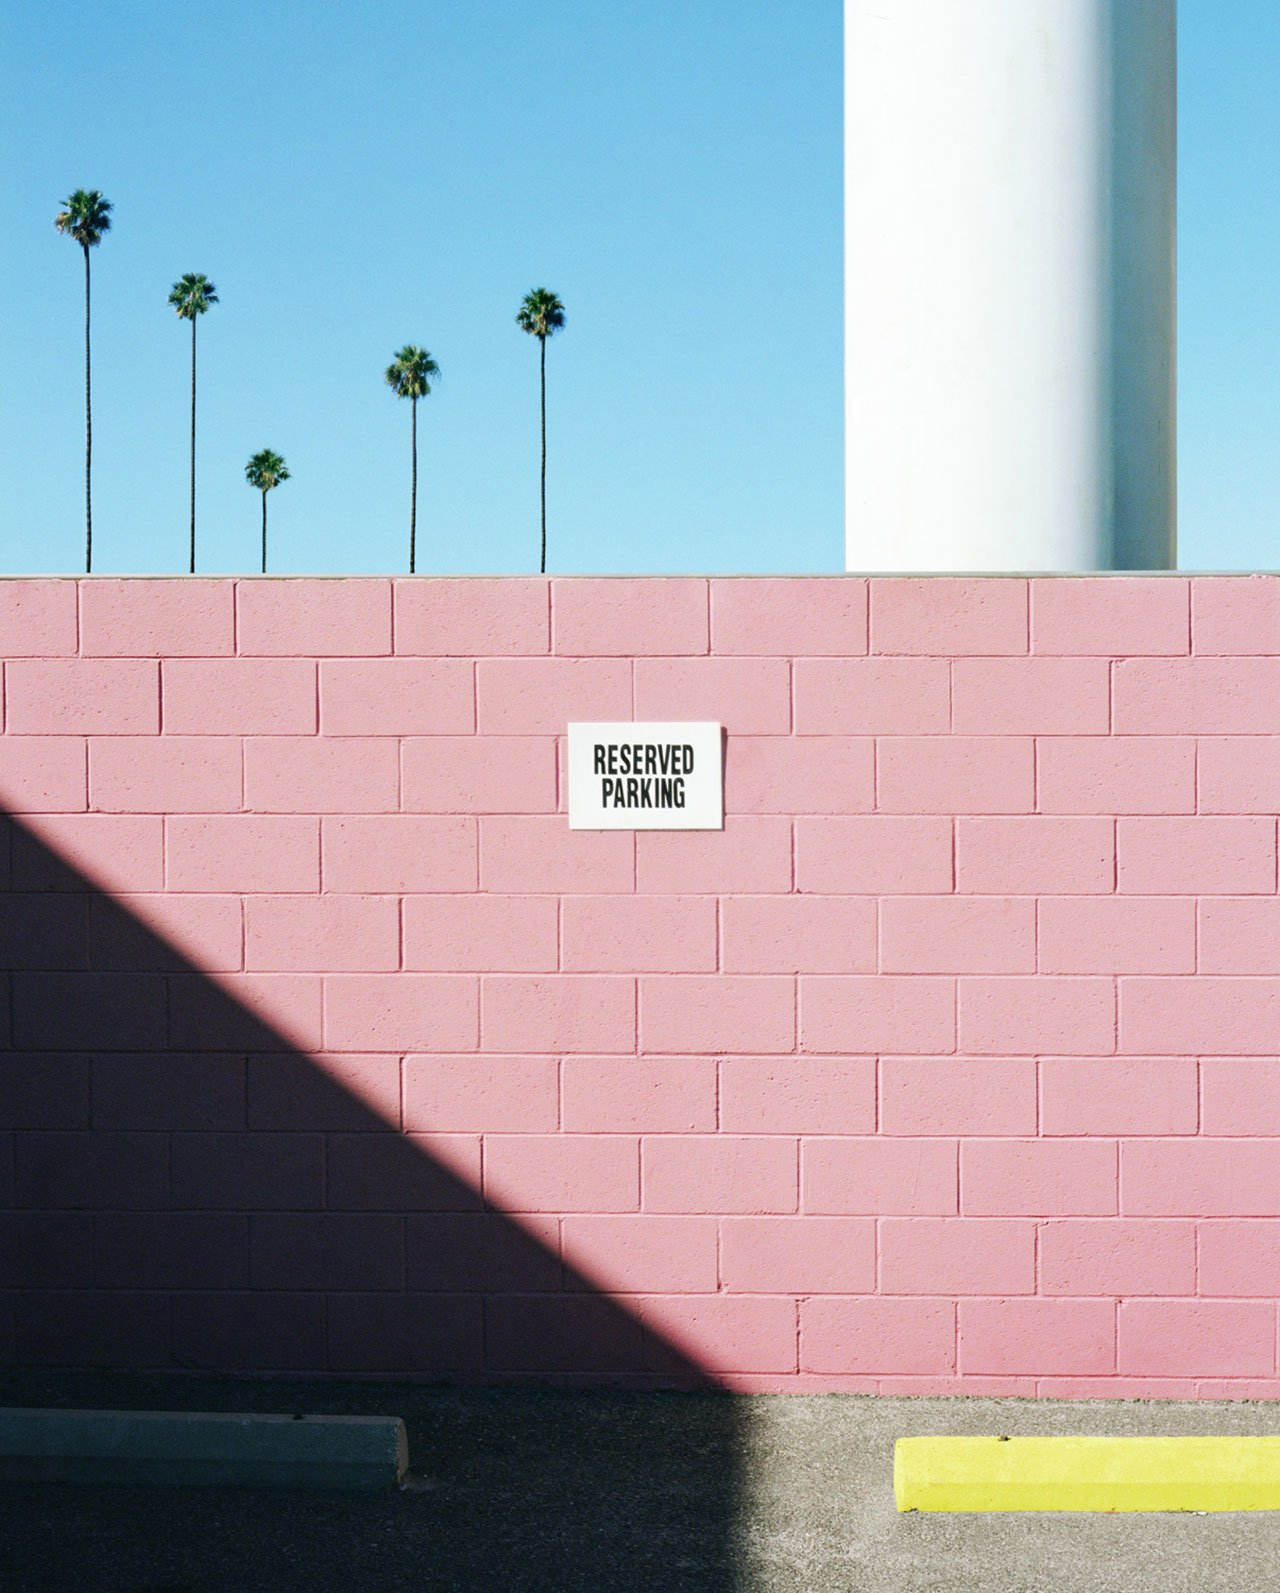 George Byrne East Hollywood Carpark, 2016